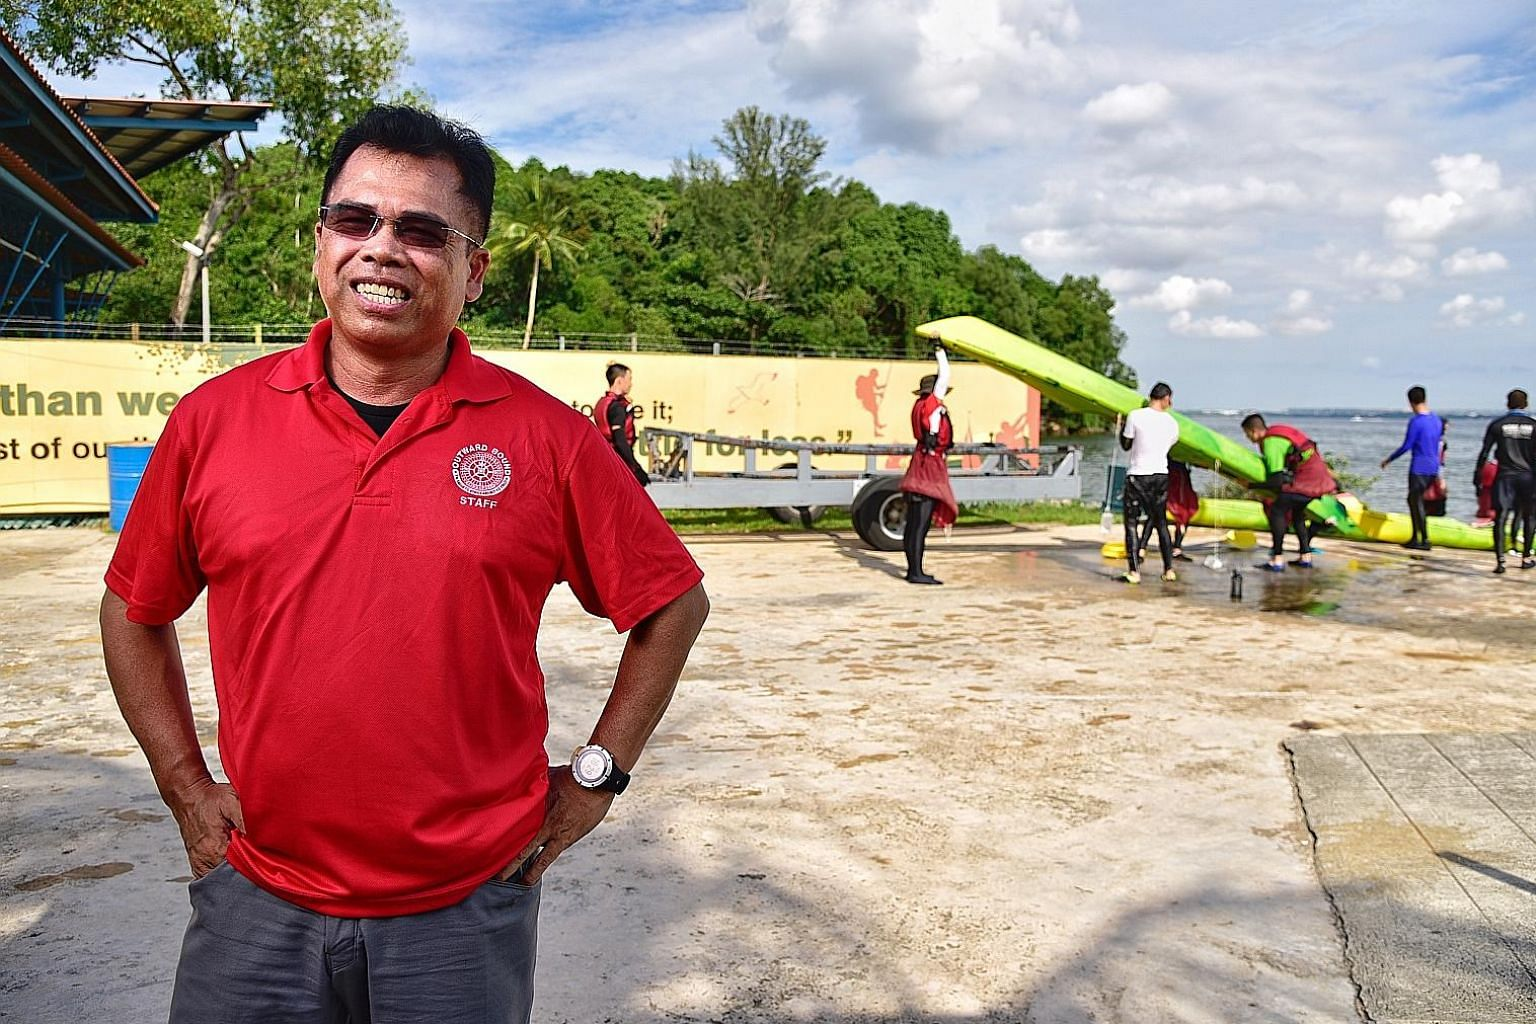 Mr Shaharudin Othman says joining Outward Bound Singapore as an instructor paved the way for him to explore his interest in sports such as kayaking and diving.